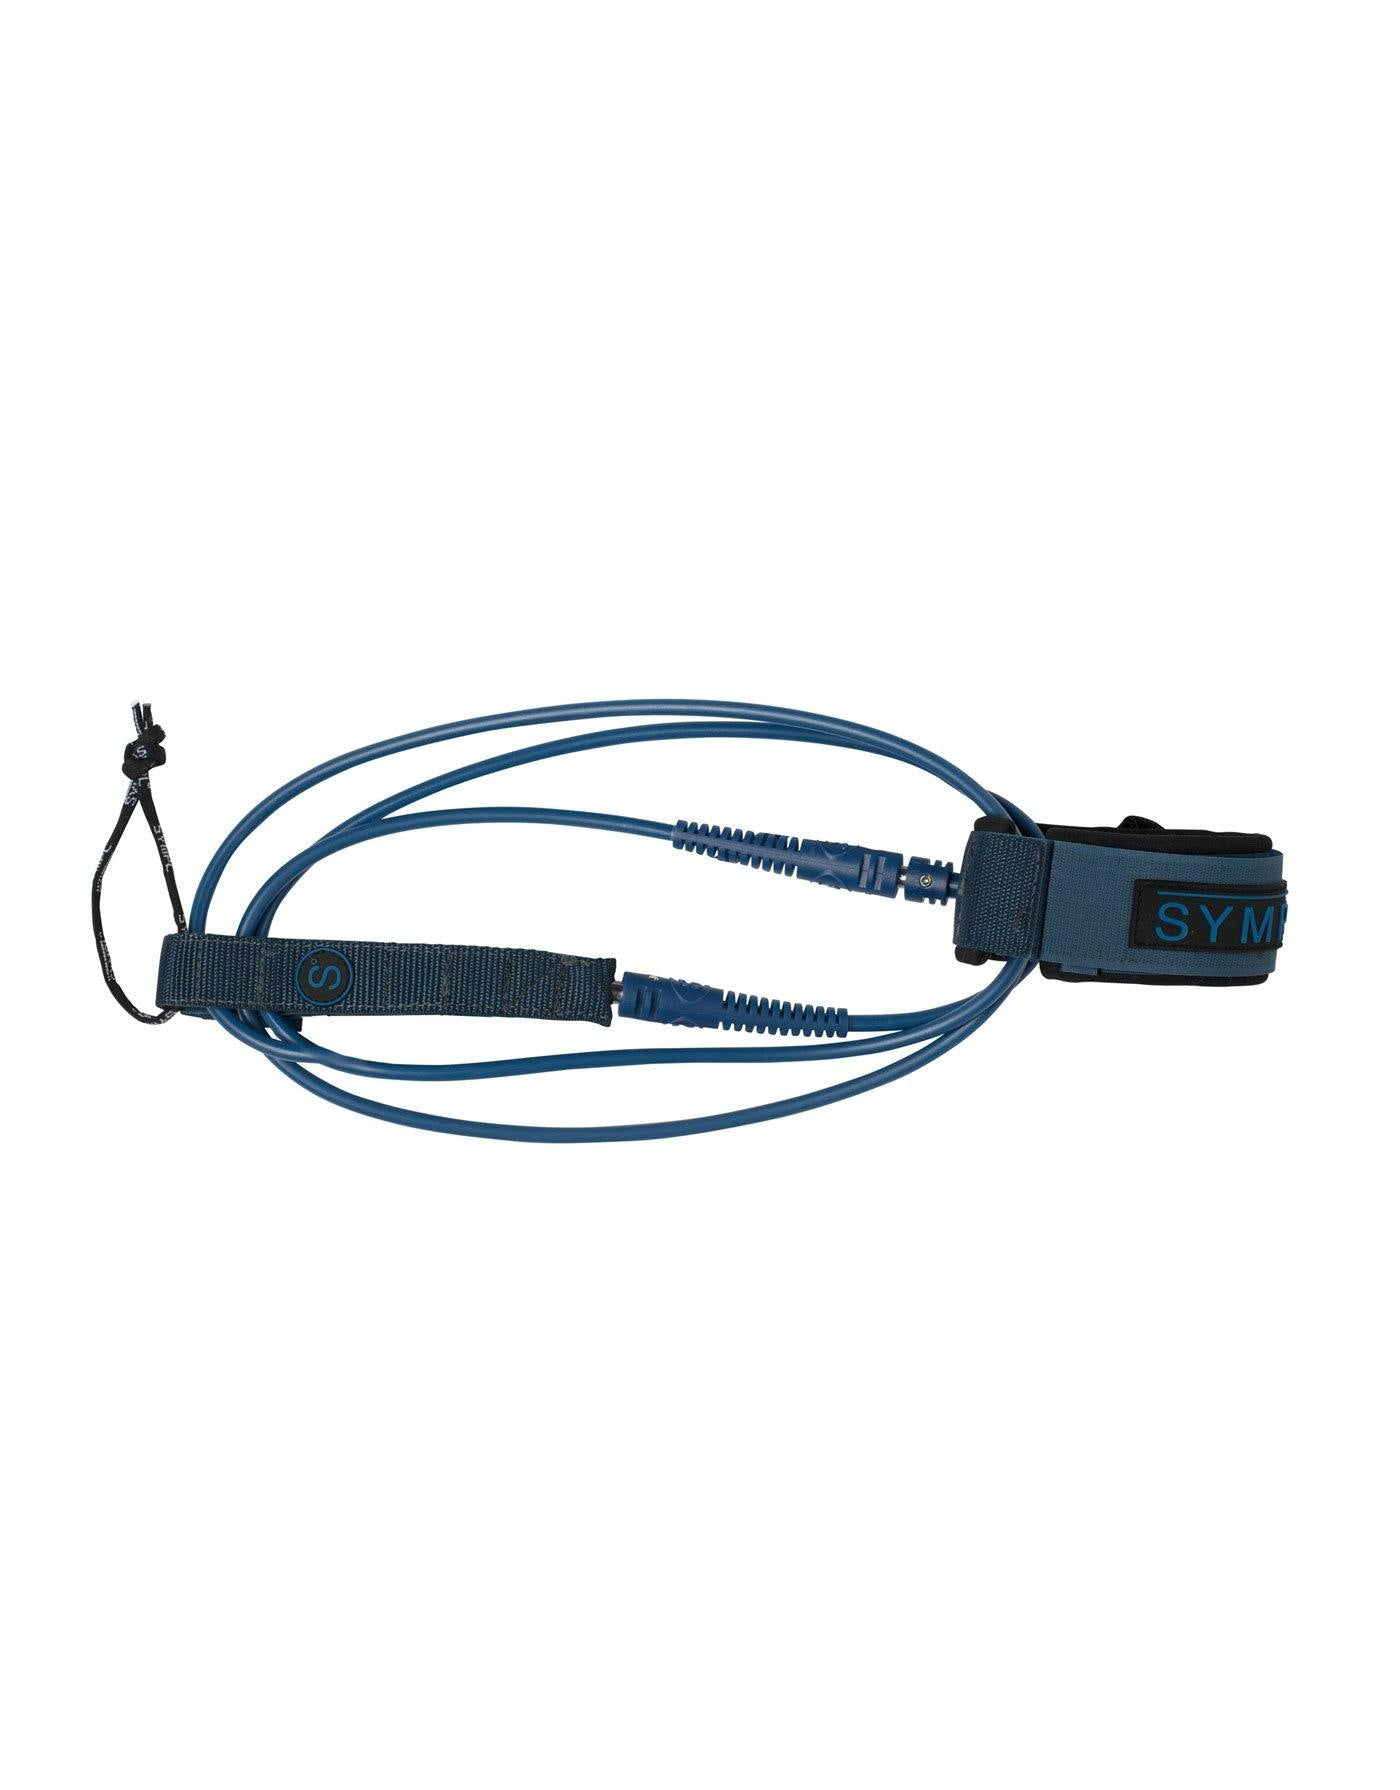 7' Sympl Pro Leash - Colors Vary - Urban Surf